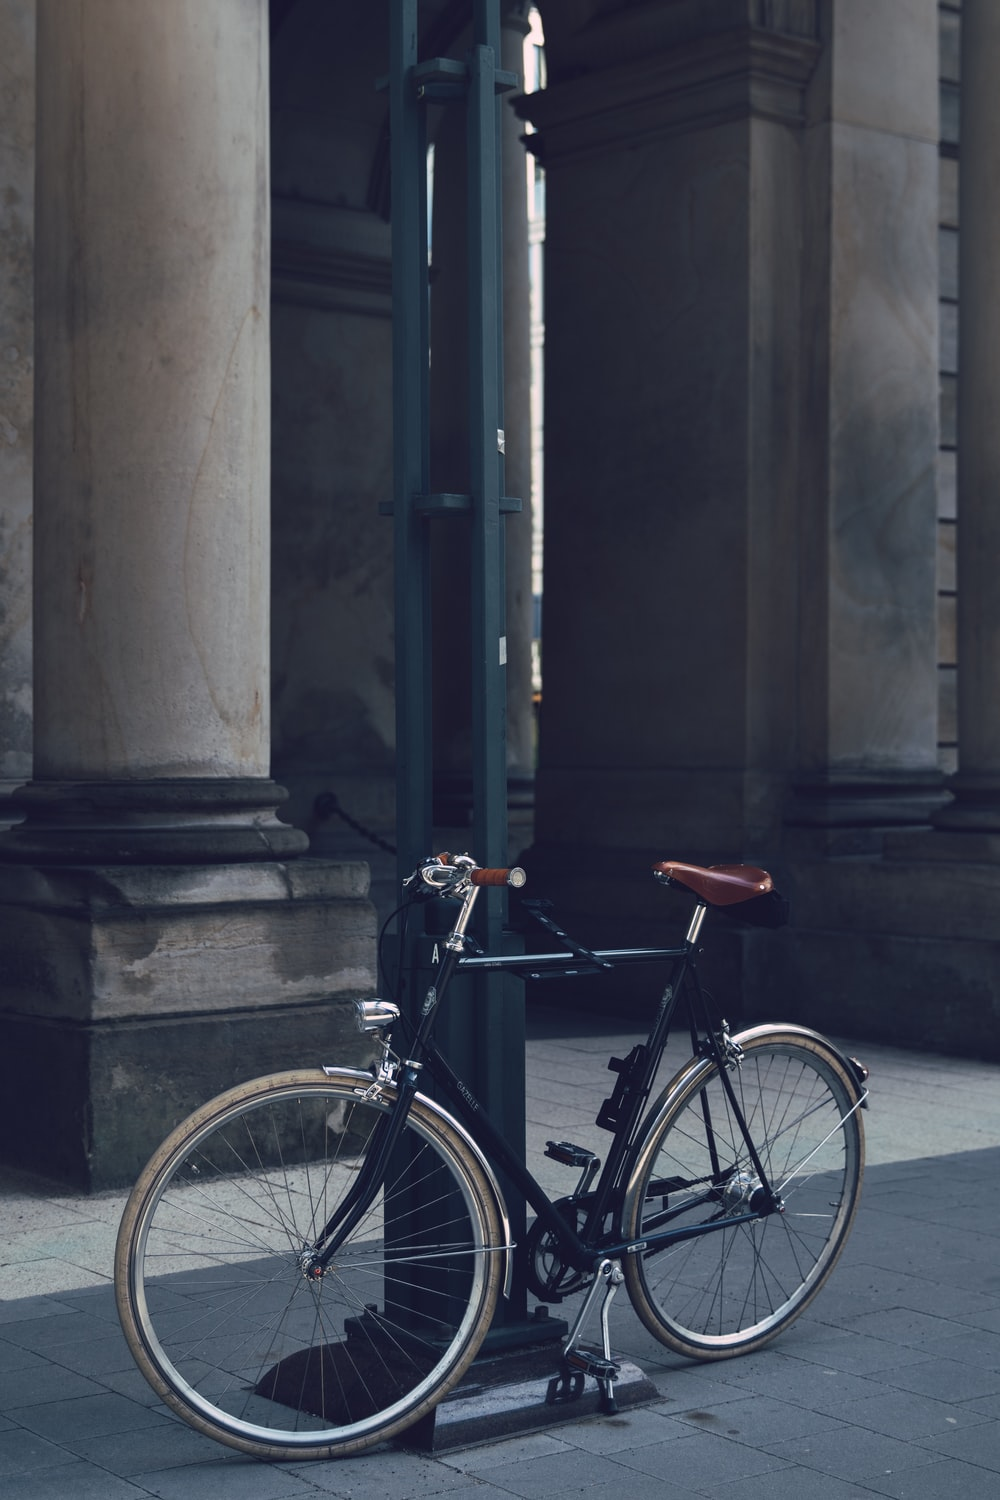 black city bike parked beside gray concrete building during daytime